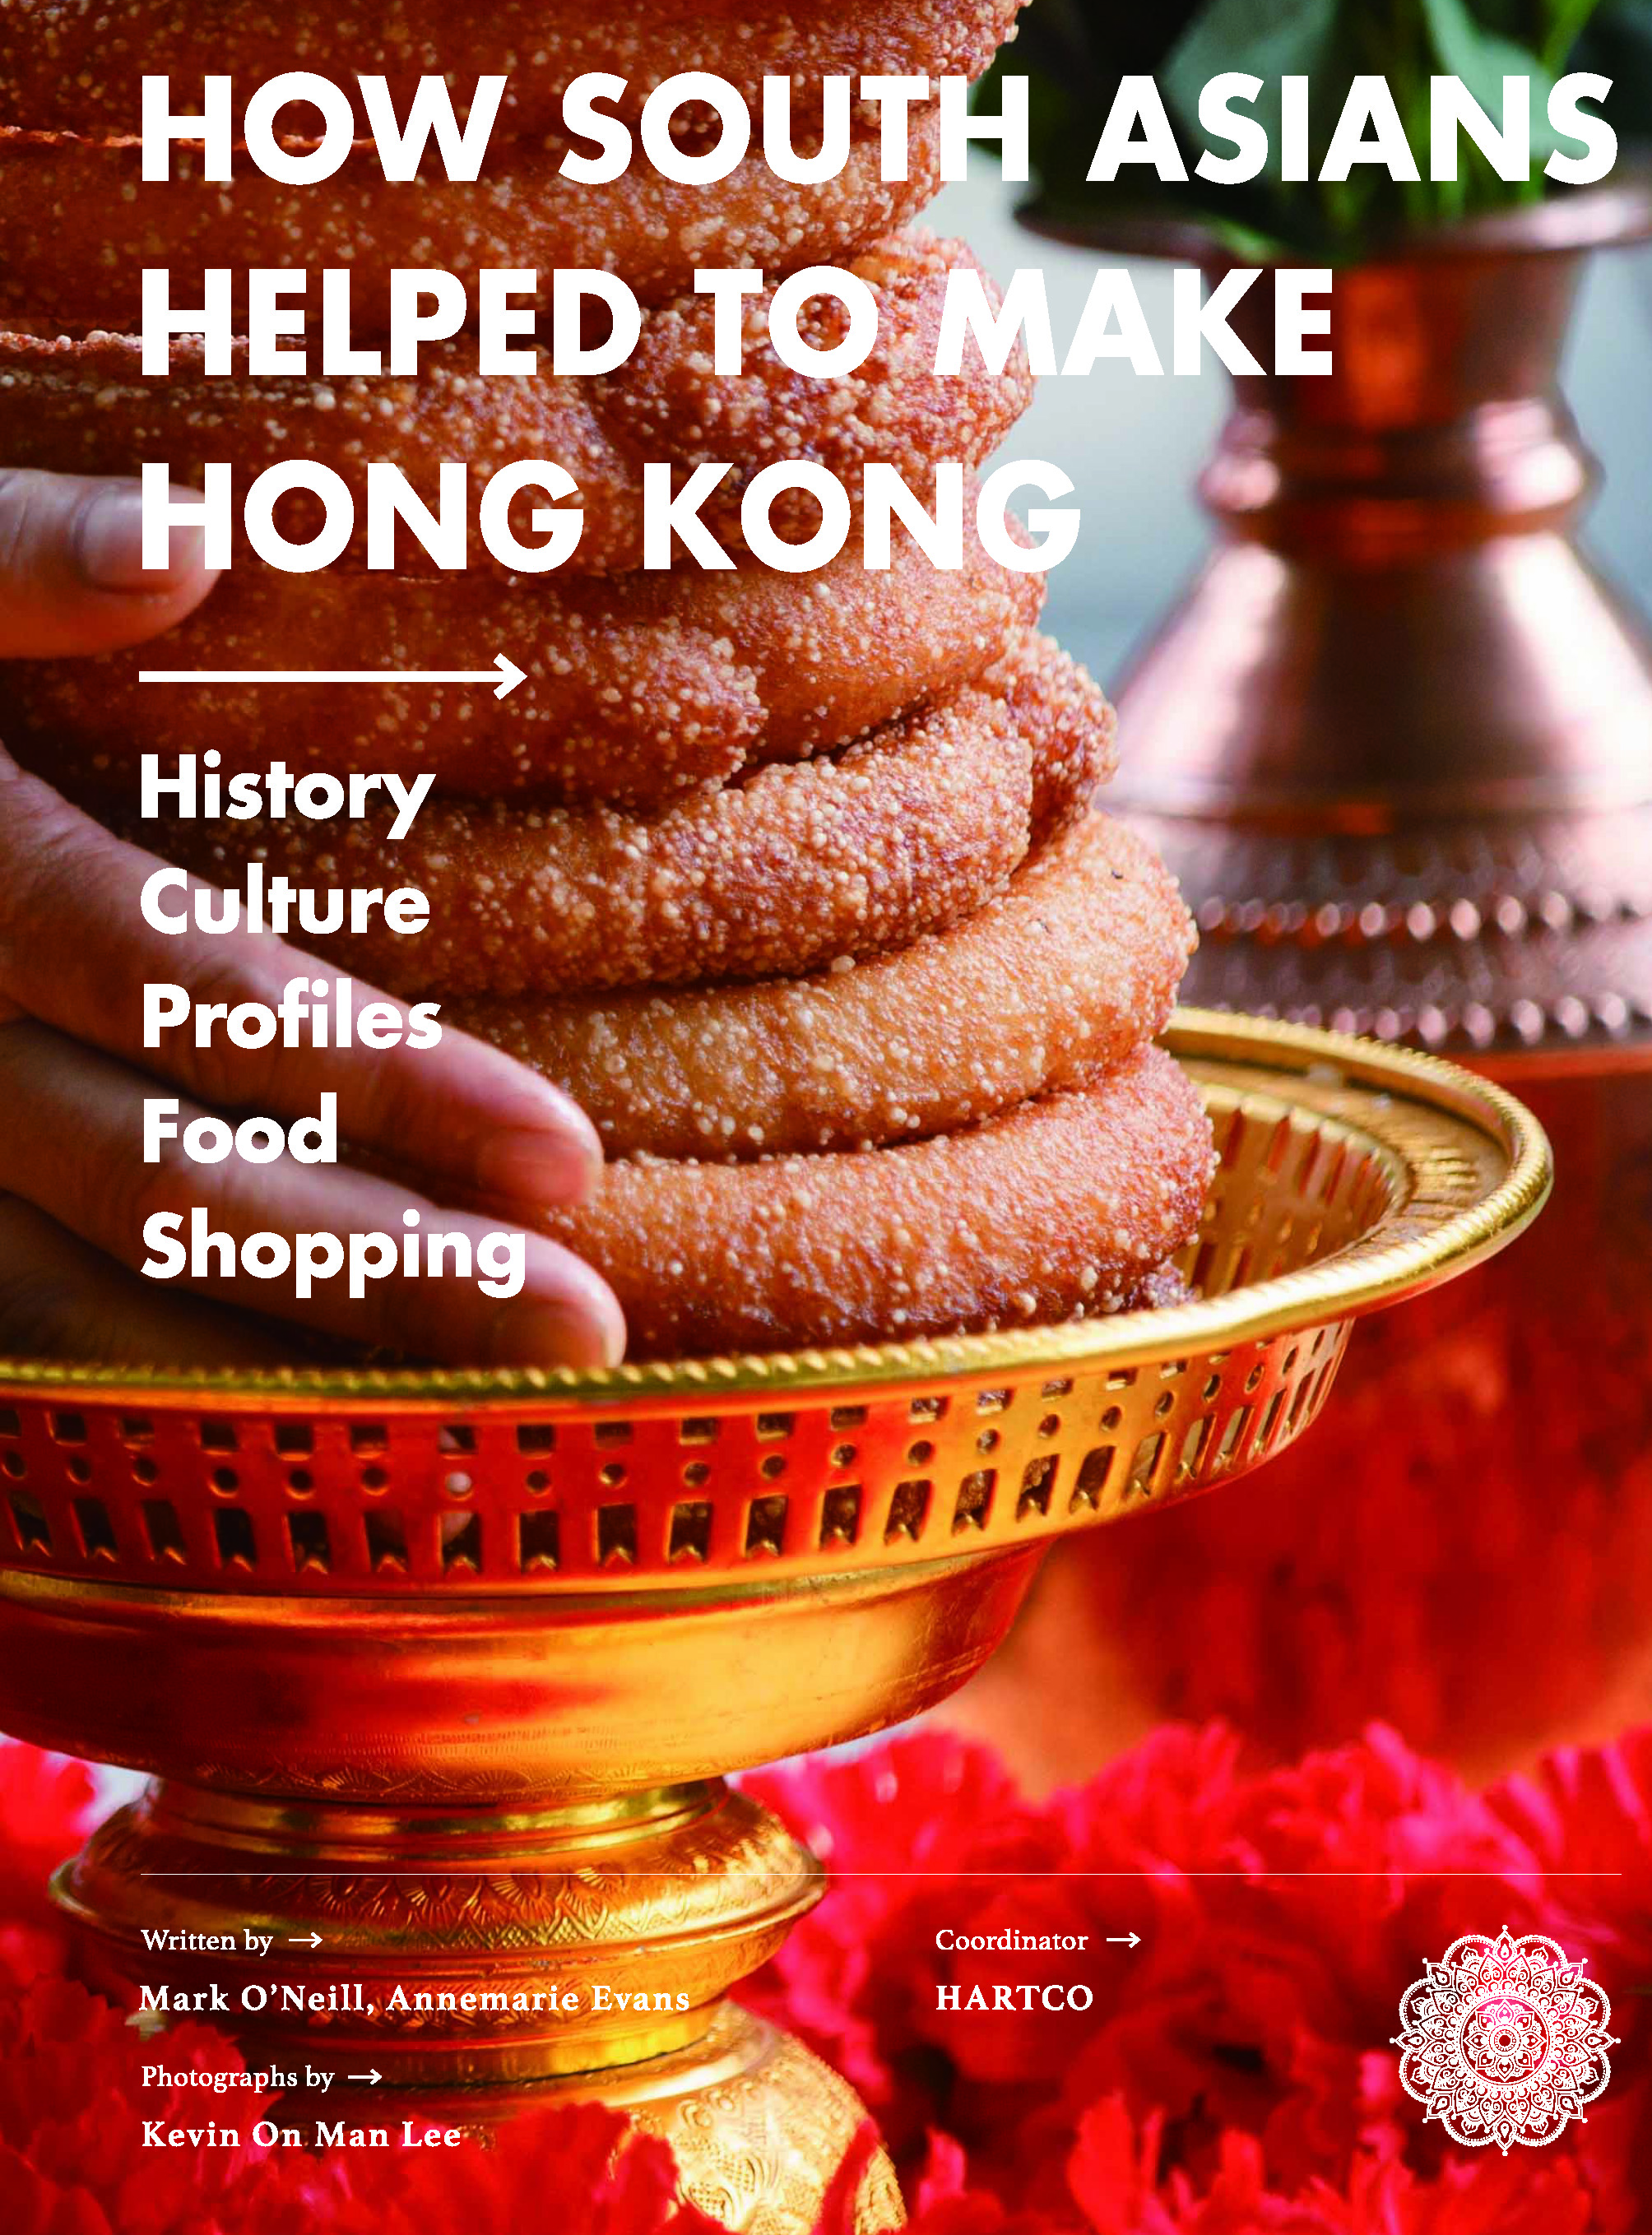 How South Asians Helped to Make Hong Kong - History, Culture, Profiles, Food,Shopping